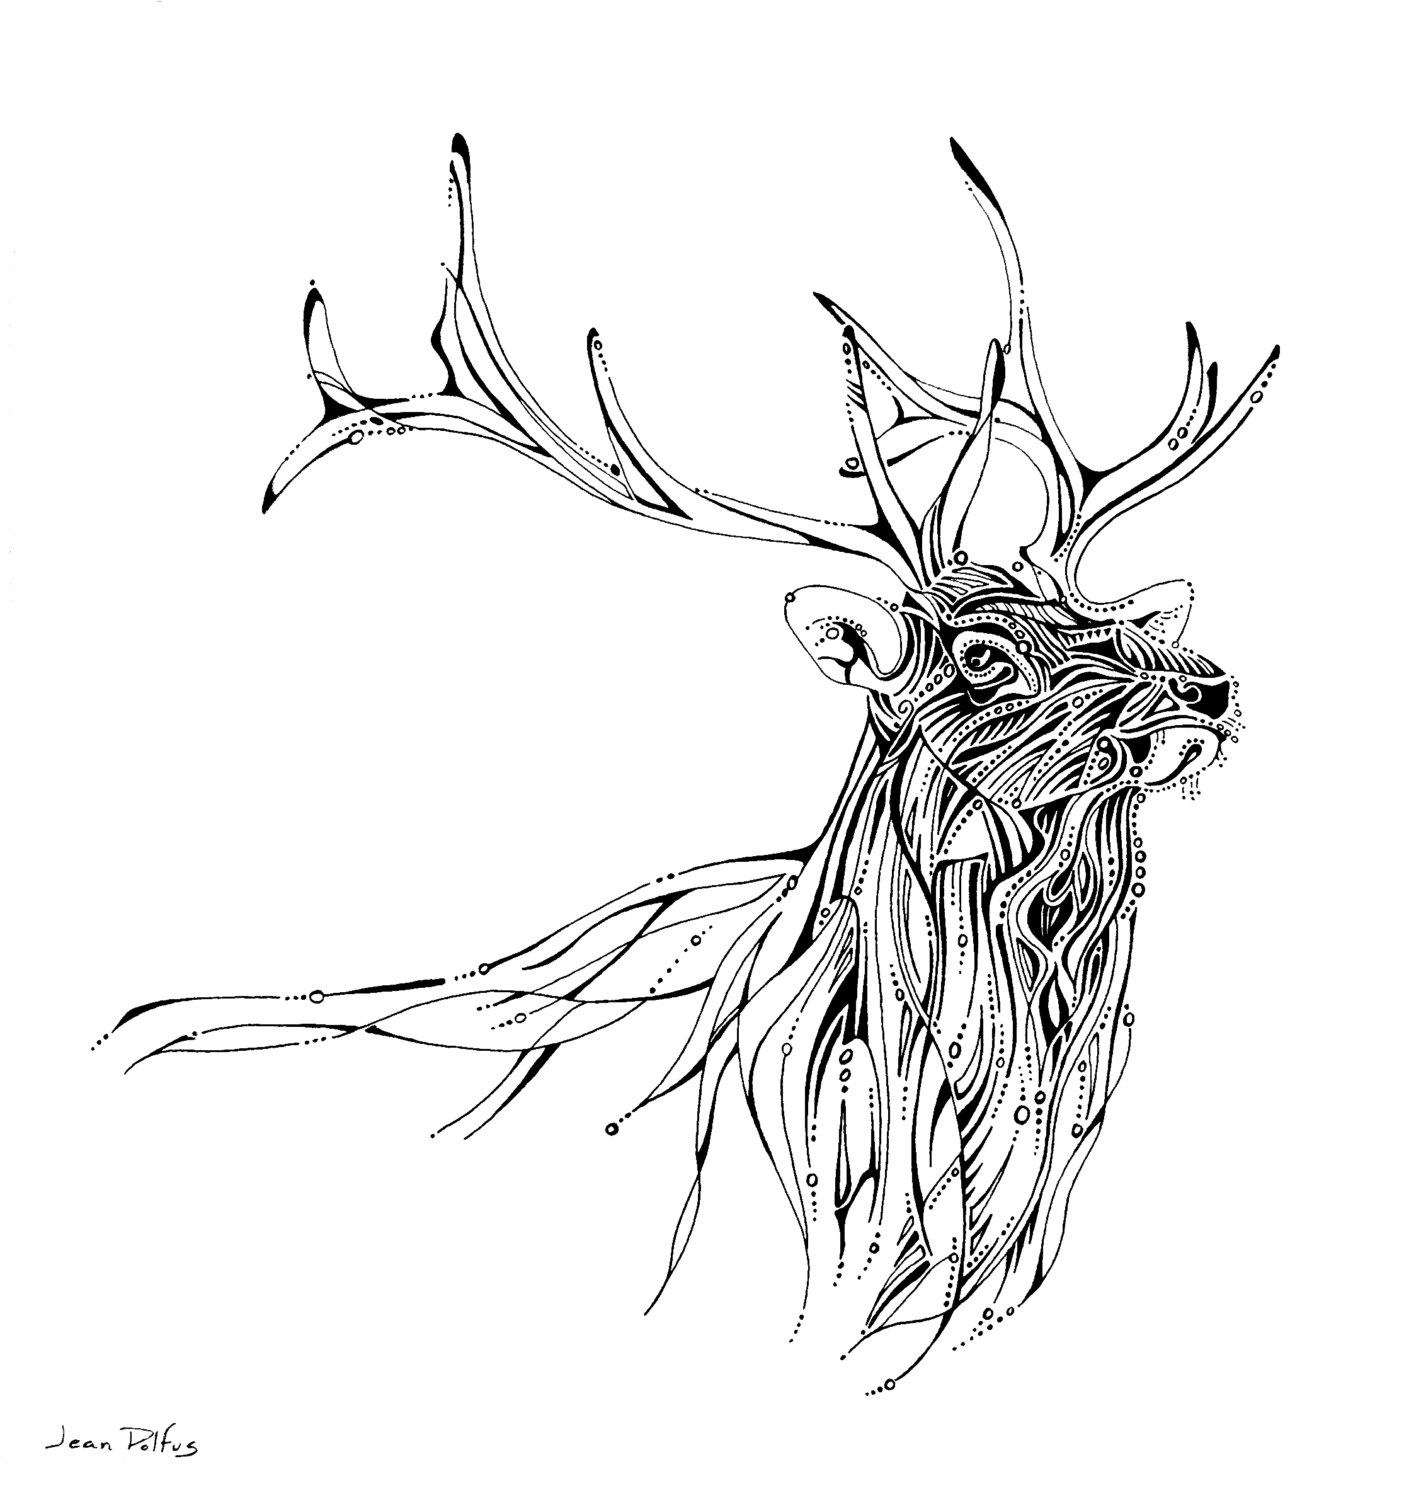 Drawn elk Etsy drawing drawing illustration artwork